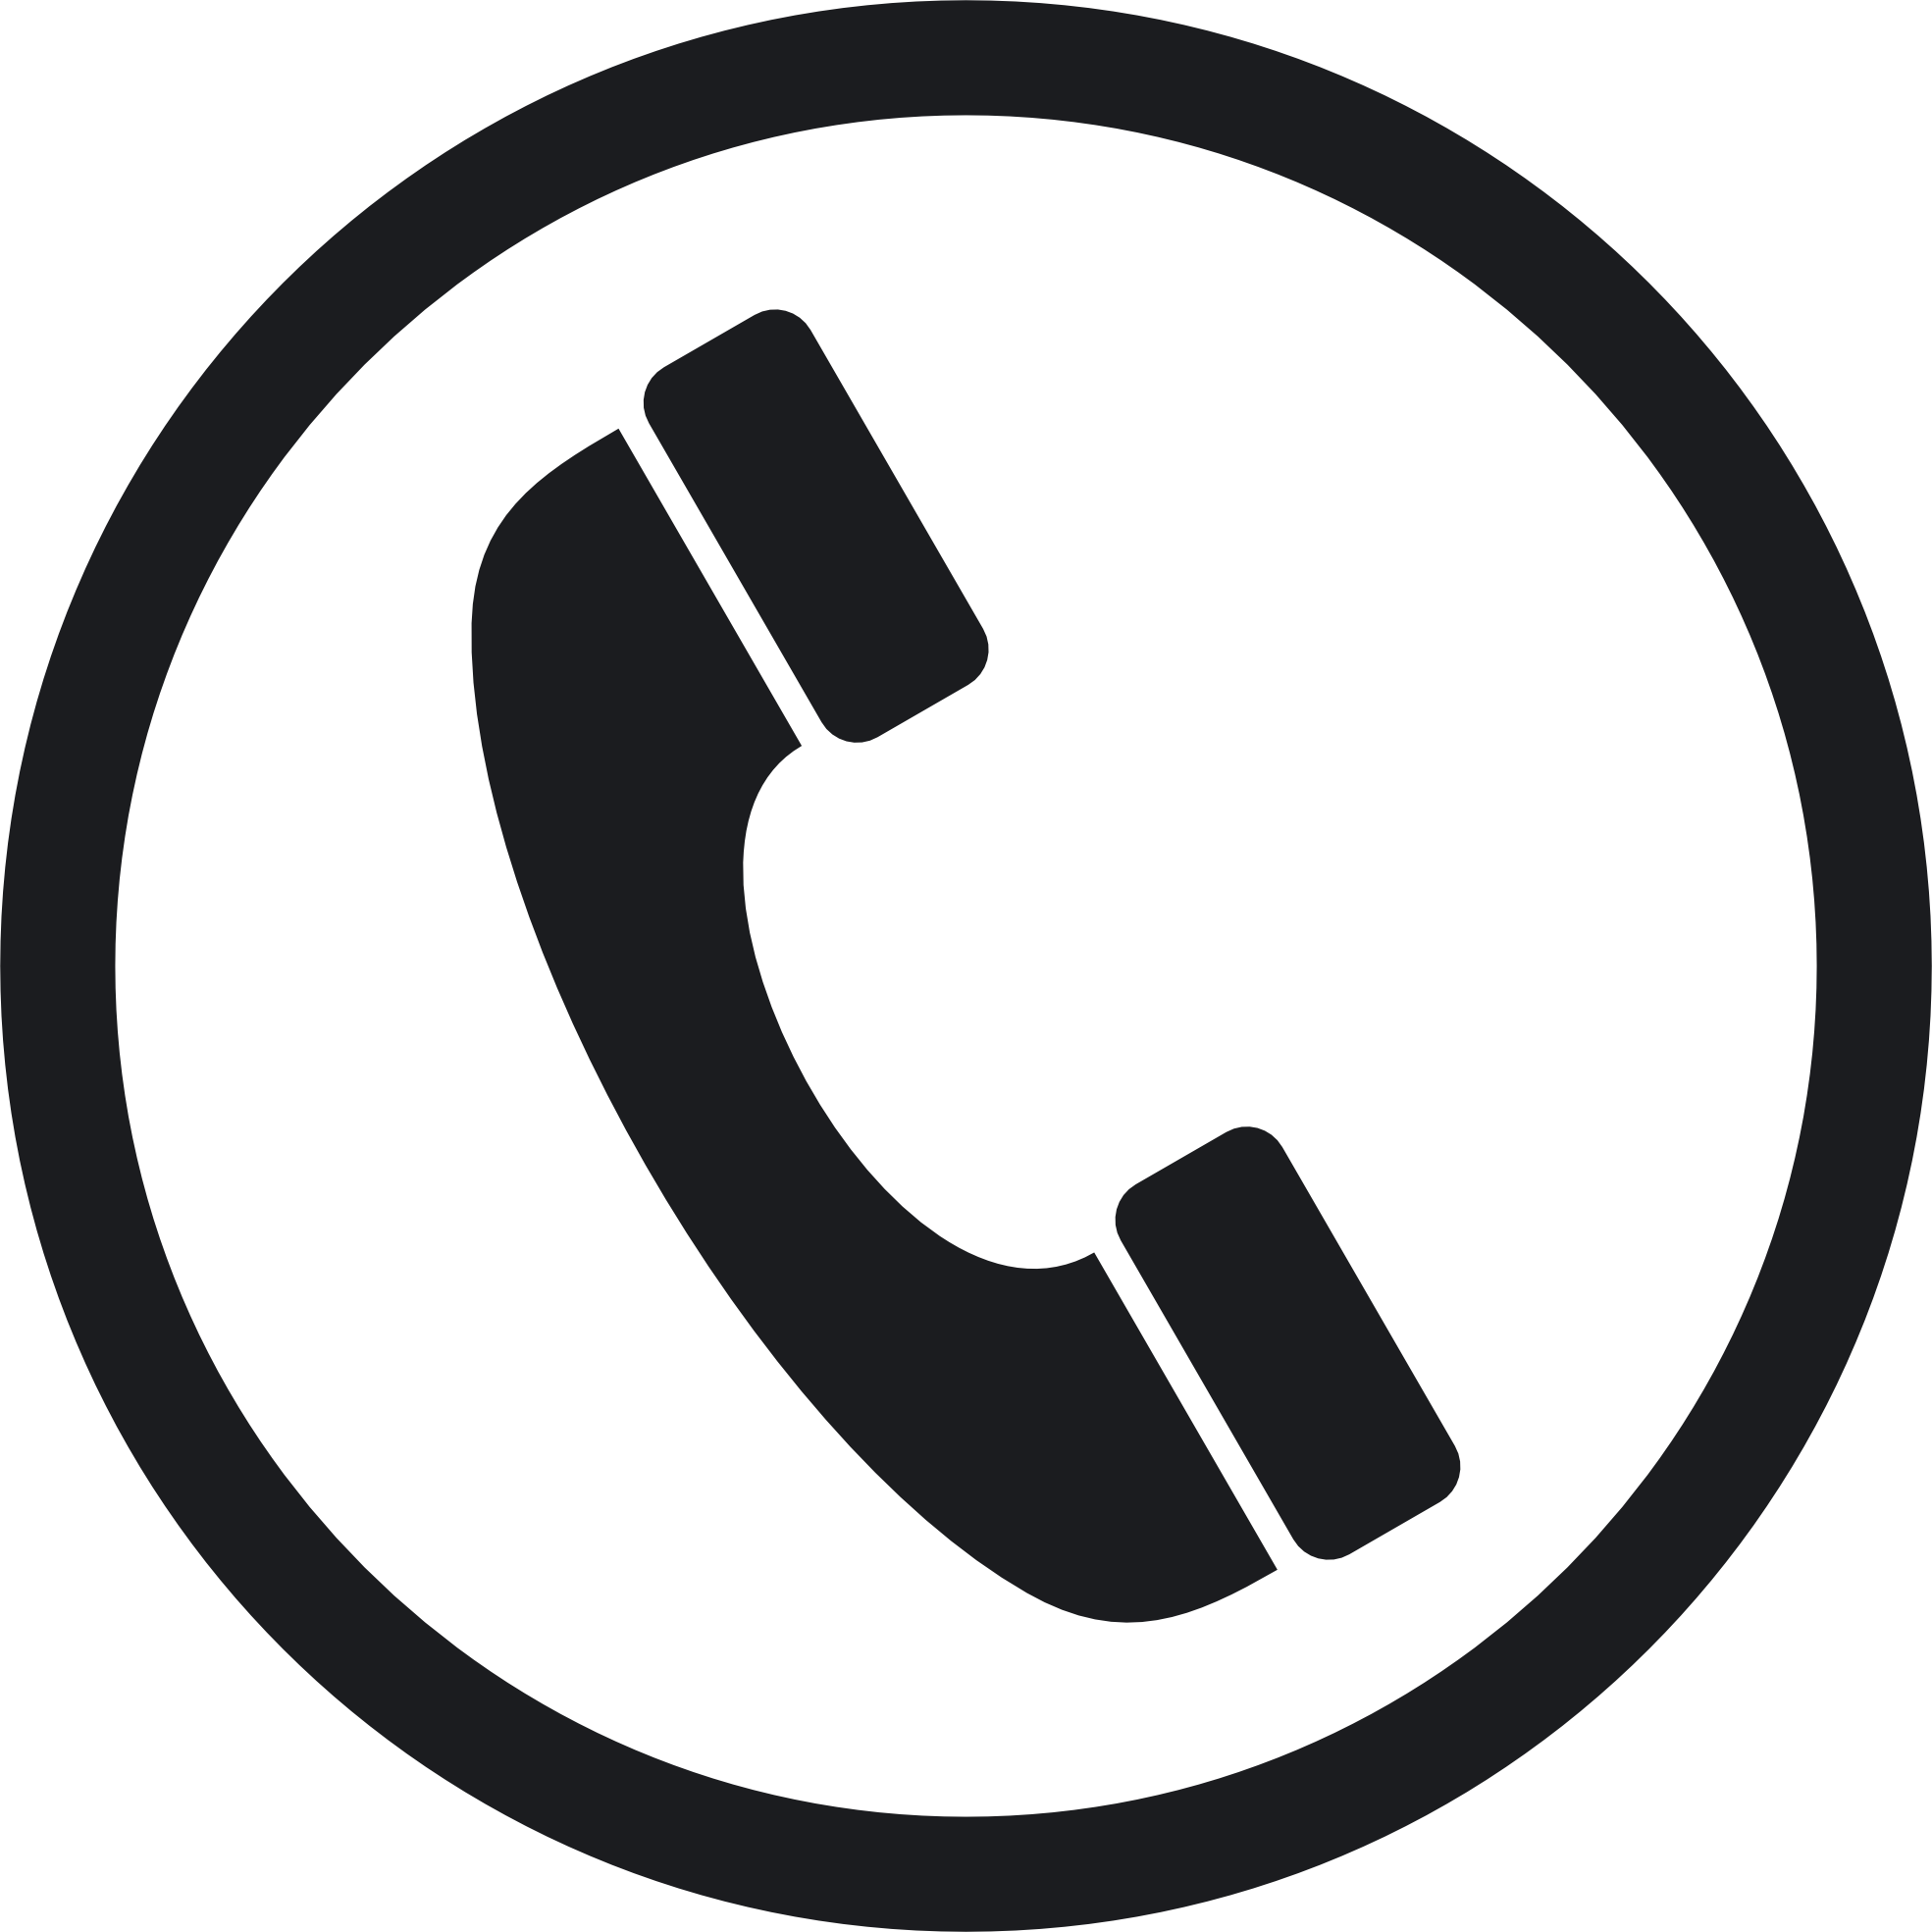 kisspng-telephone-icon-phone-png-file-5a753b46265fe1.5997722815176323261572